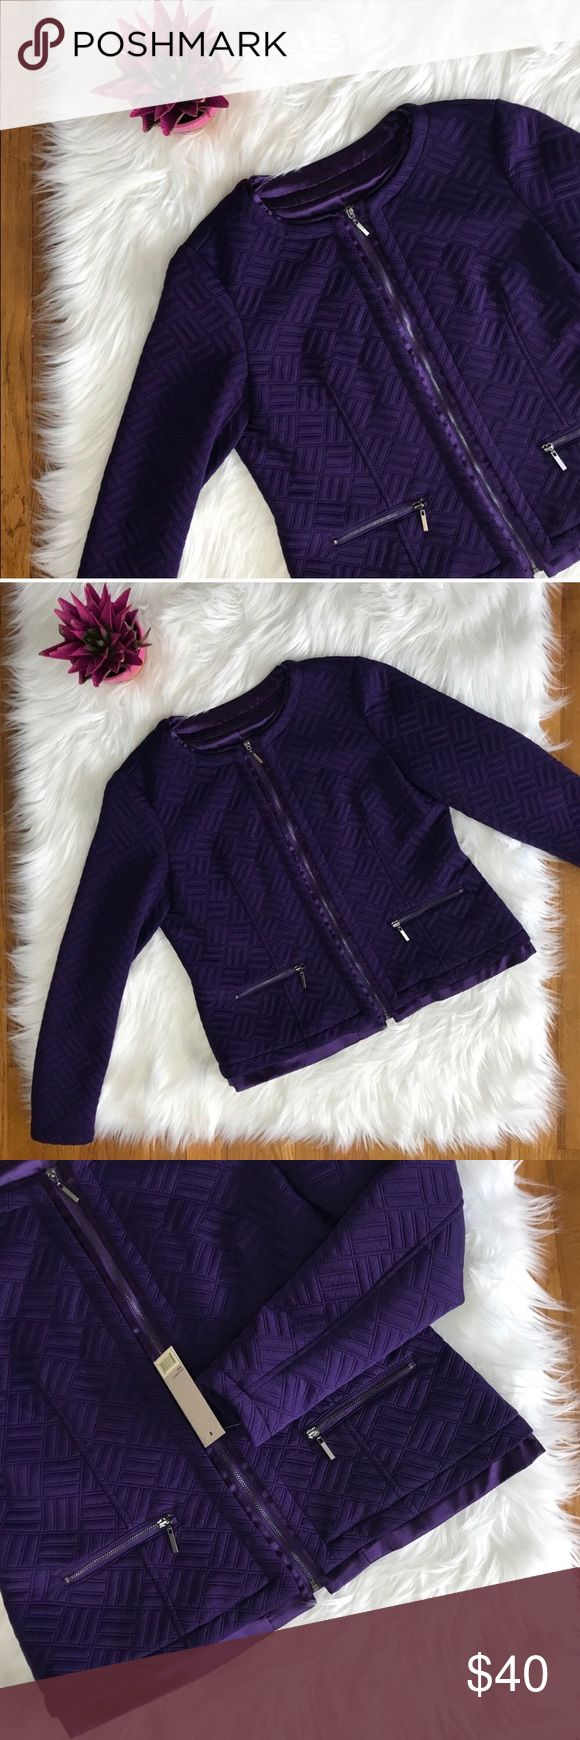 """Laura Ashley Purple Quilted Blazer NWT Laura Ashley Purple Quilted Blazer NWT  96% Polyester 4% Spandex  Fiber Fill: 100% Polyester  Lining & Trim: 100% Polyester  Dry Clean  Approximately: 22"""" Long 19"""" Pit to pit 23"""" Sleeves 16"""" Shoulder Laura Ashley Jackets & Coats Blazers"""